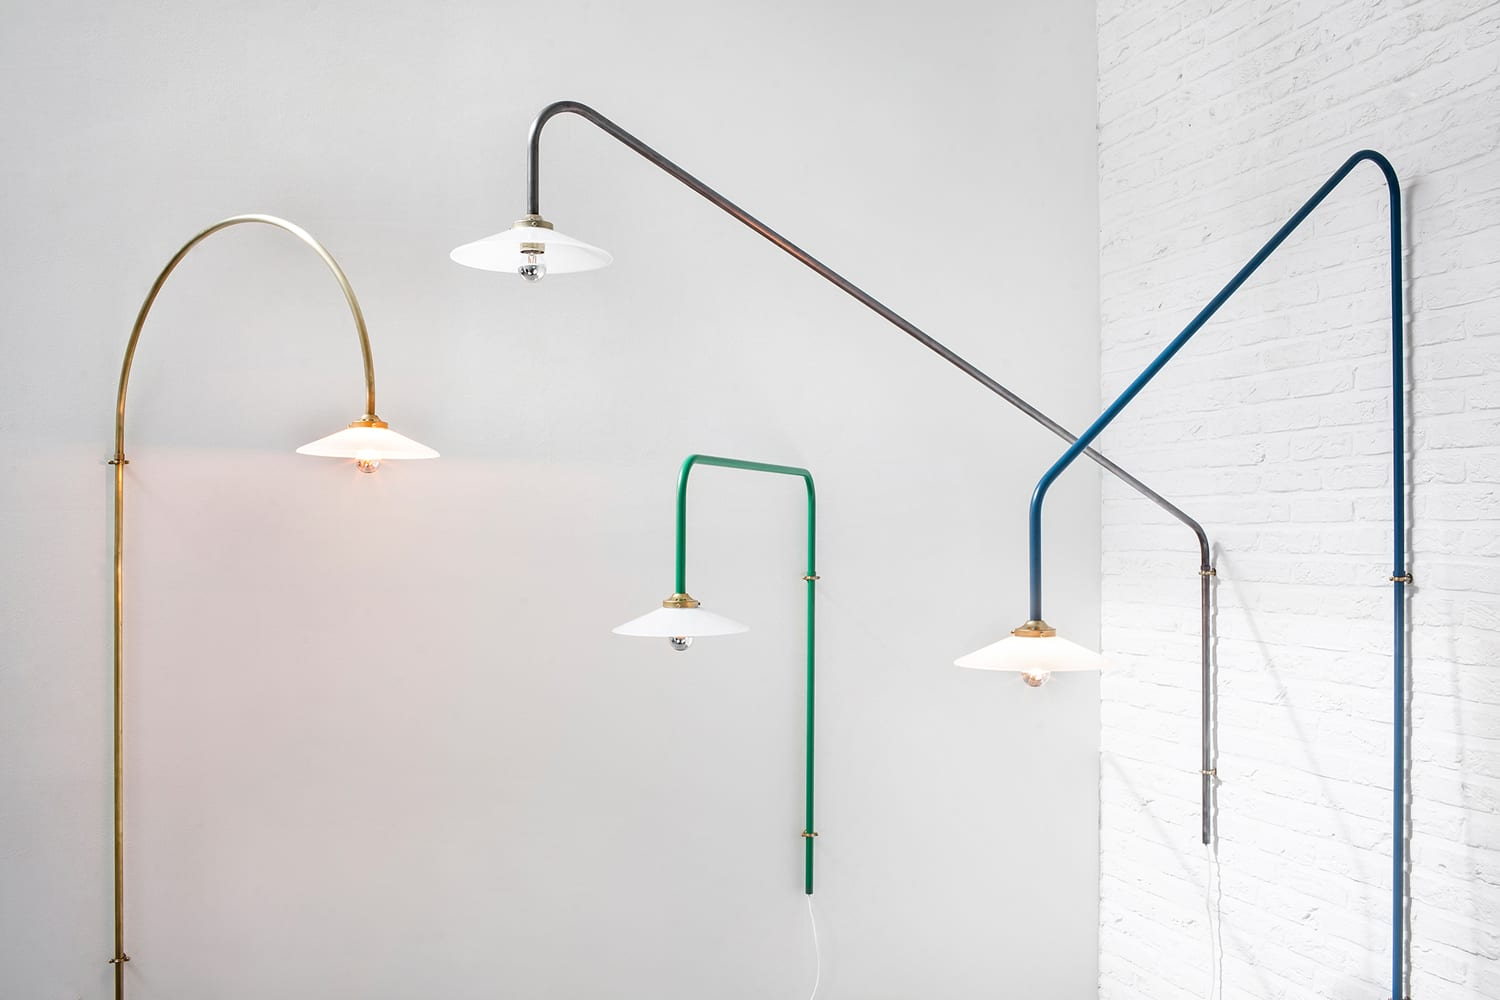 Hanging Lamps by Muller Van Severen for Valerie Objects at IMM Cologne 2018 | Yellowtrace